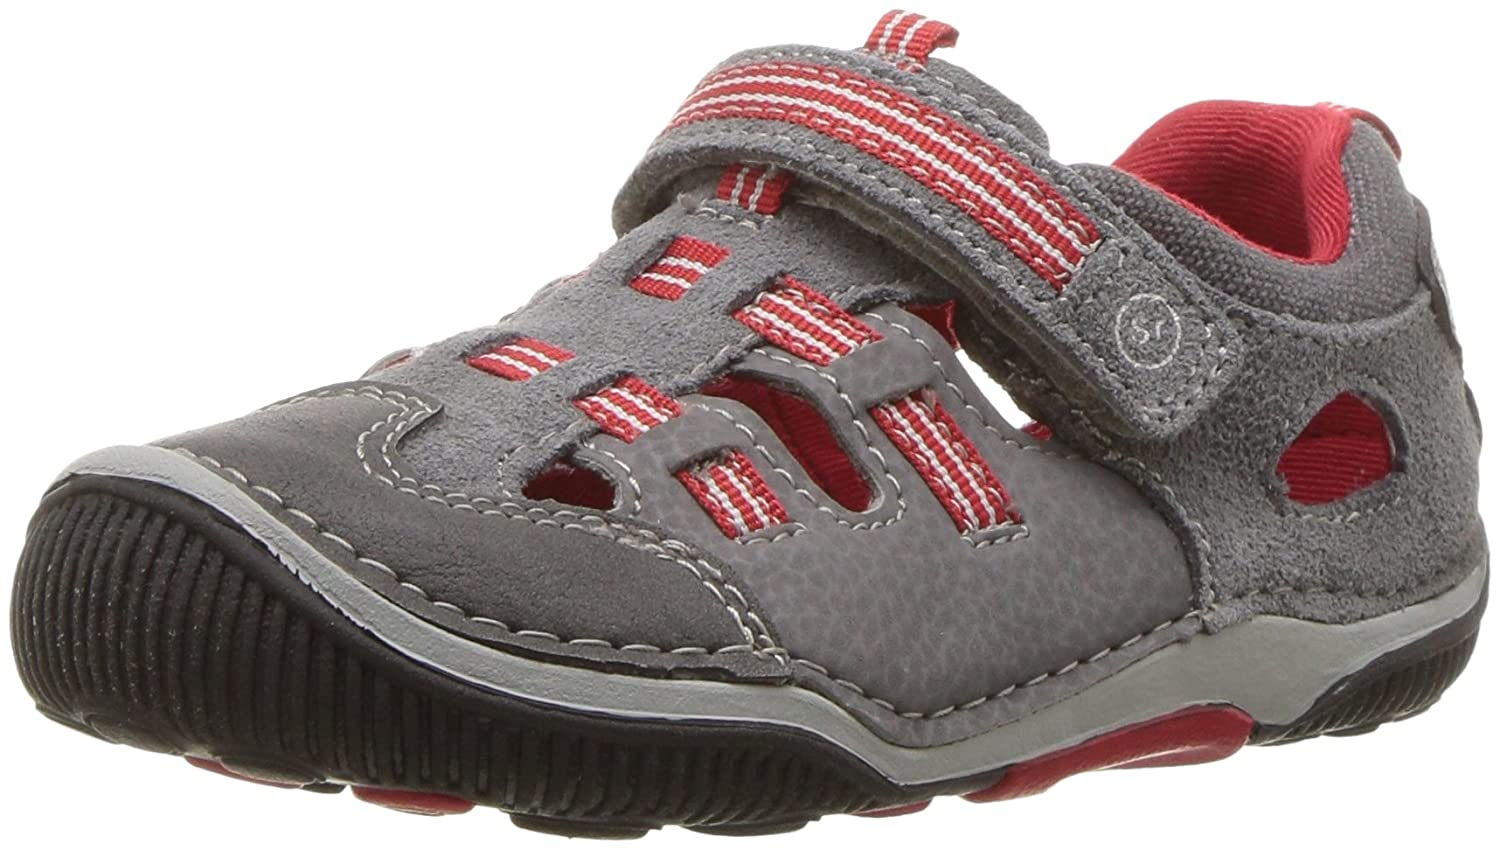 Stride Rite Kids' SRT Reggie Fisherman Sandal